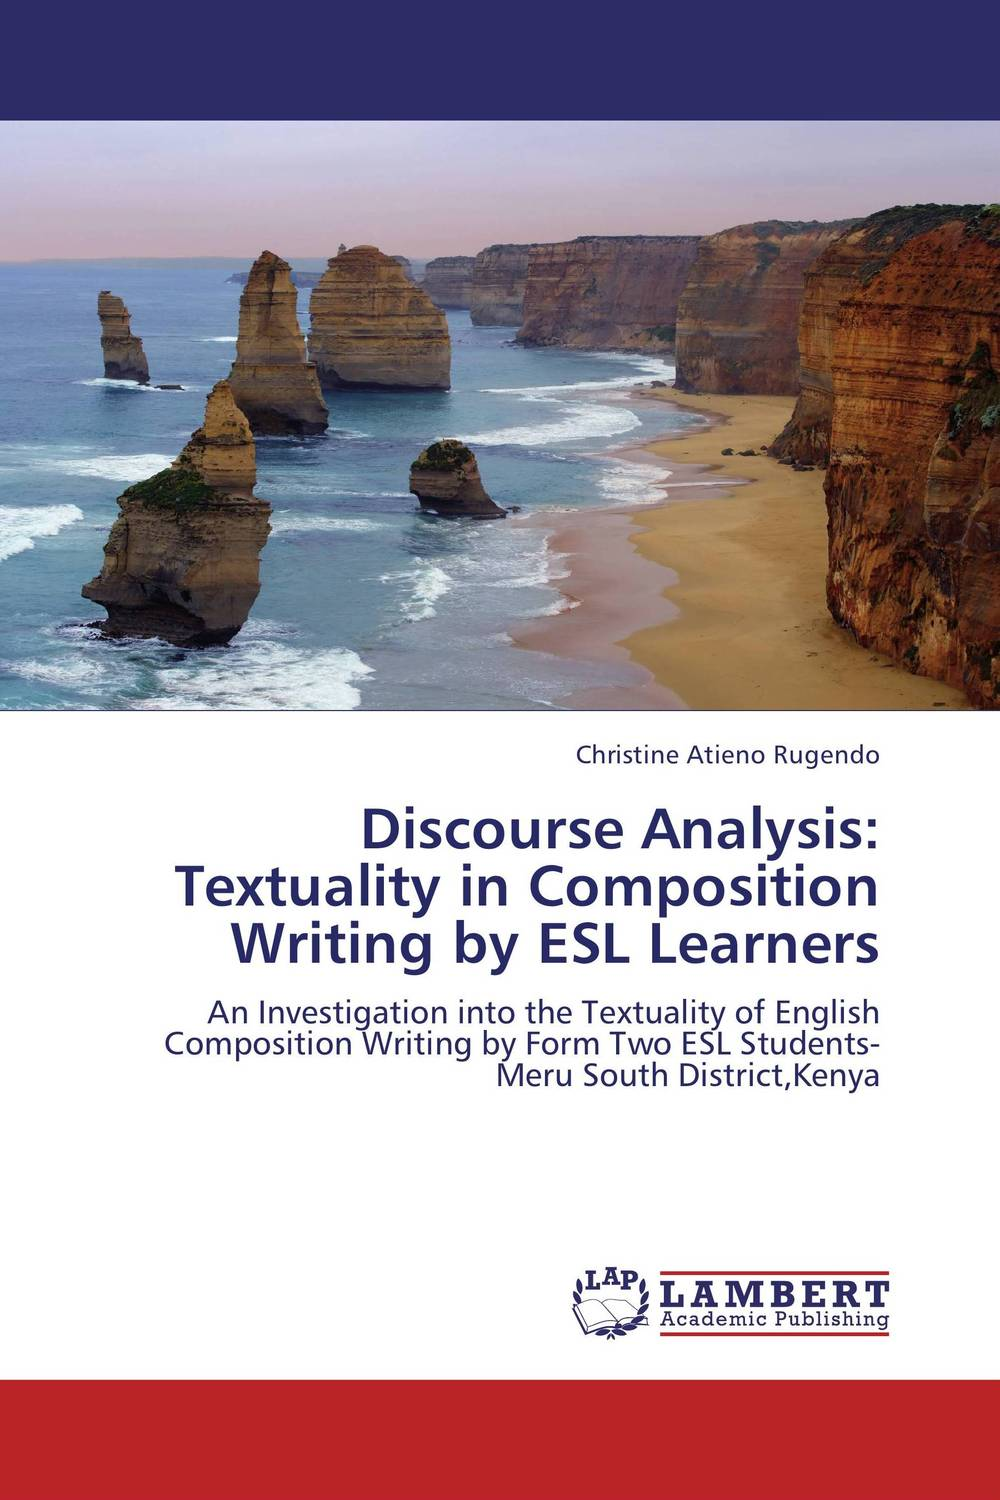 Discourse Analysis: Textuality in Composition Writing by ESL Learners